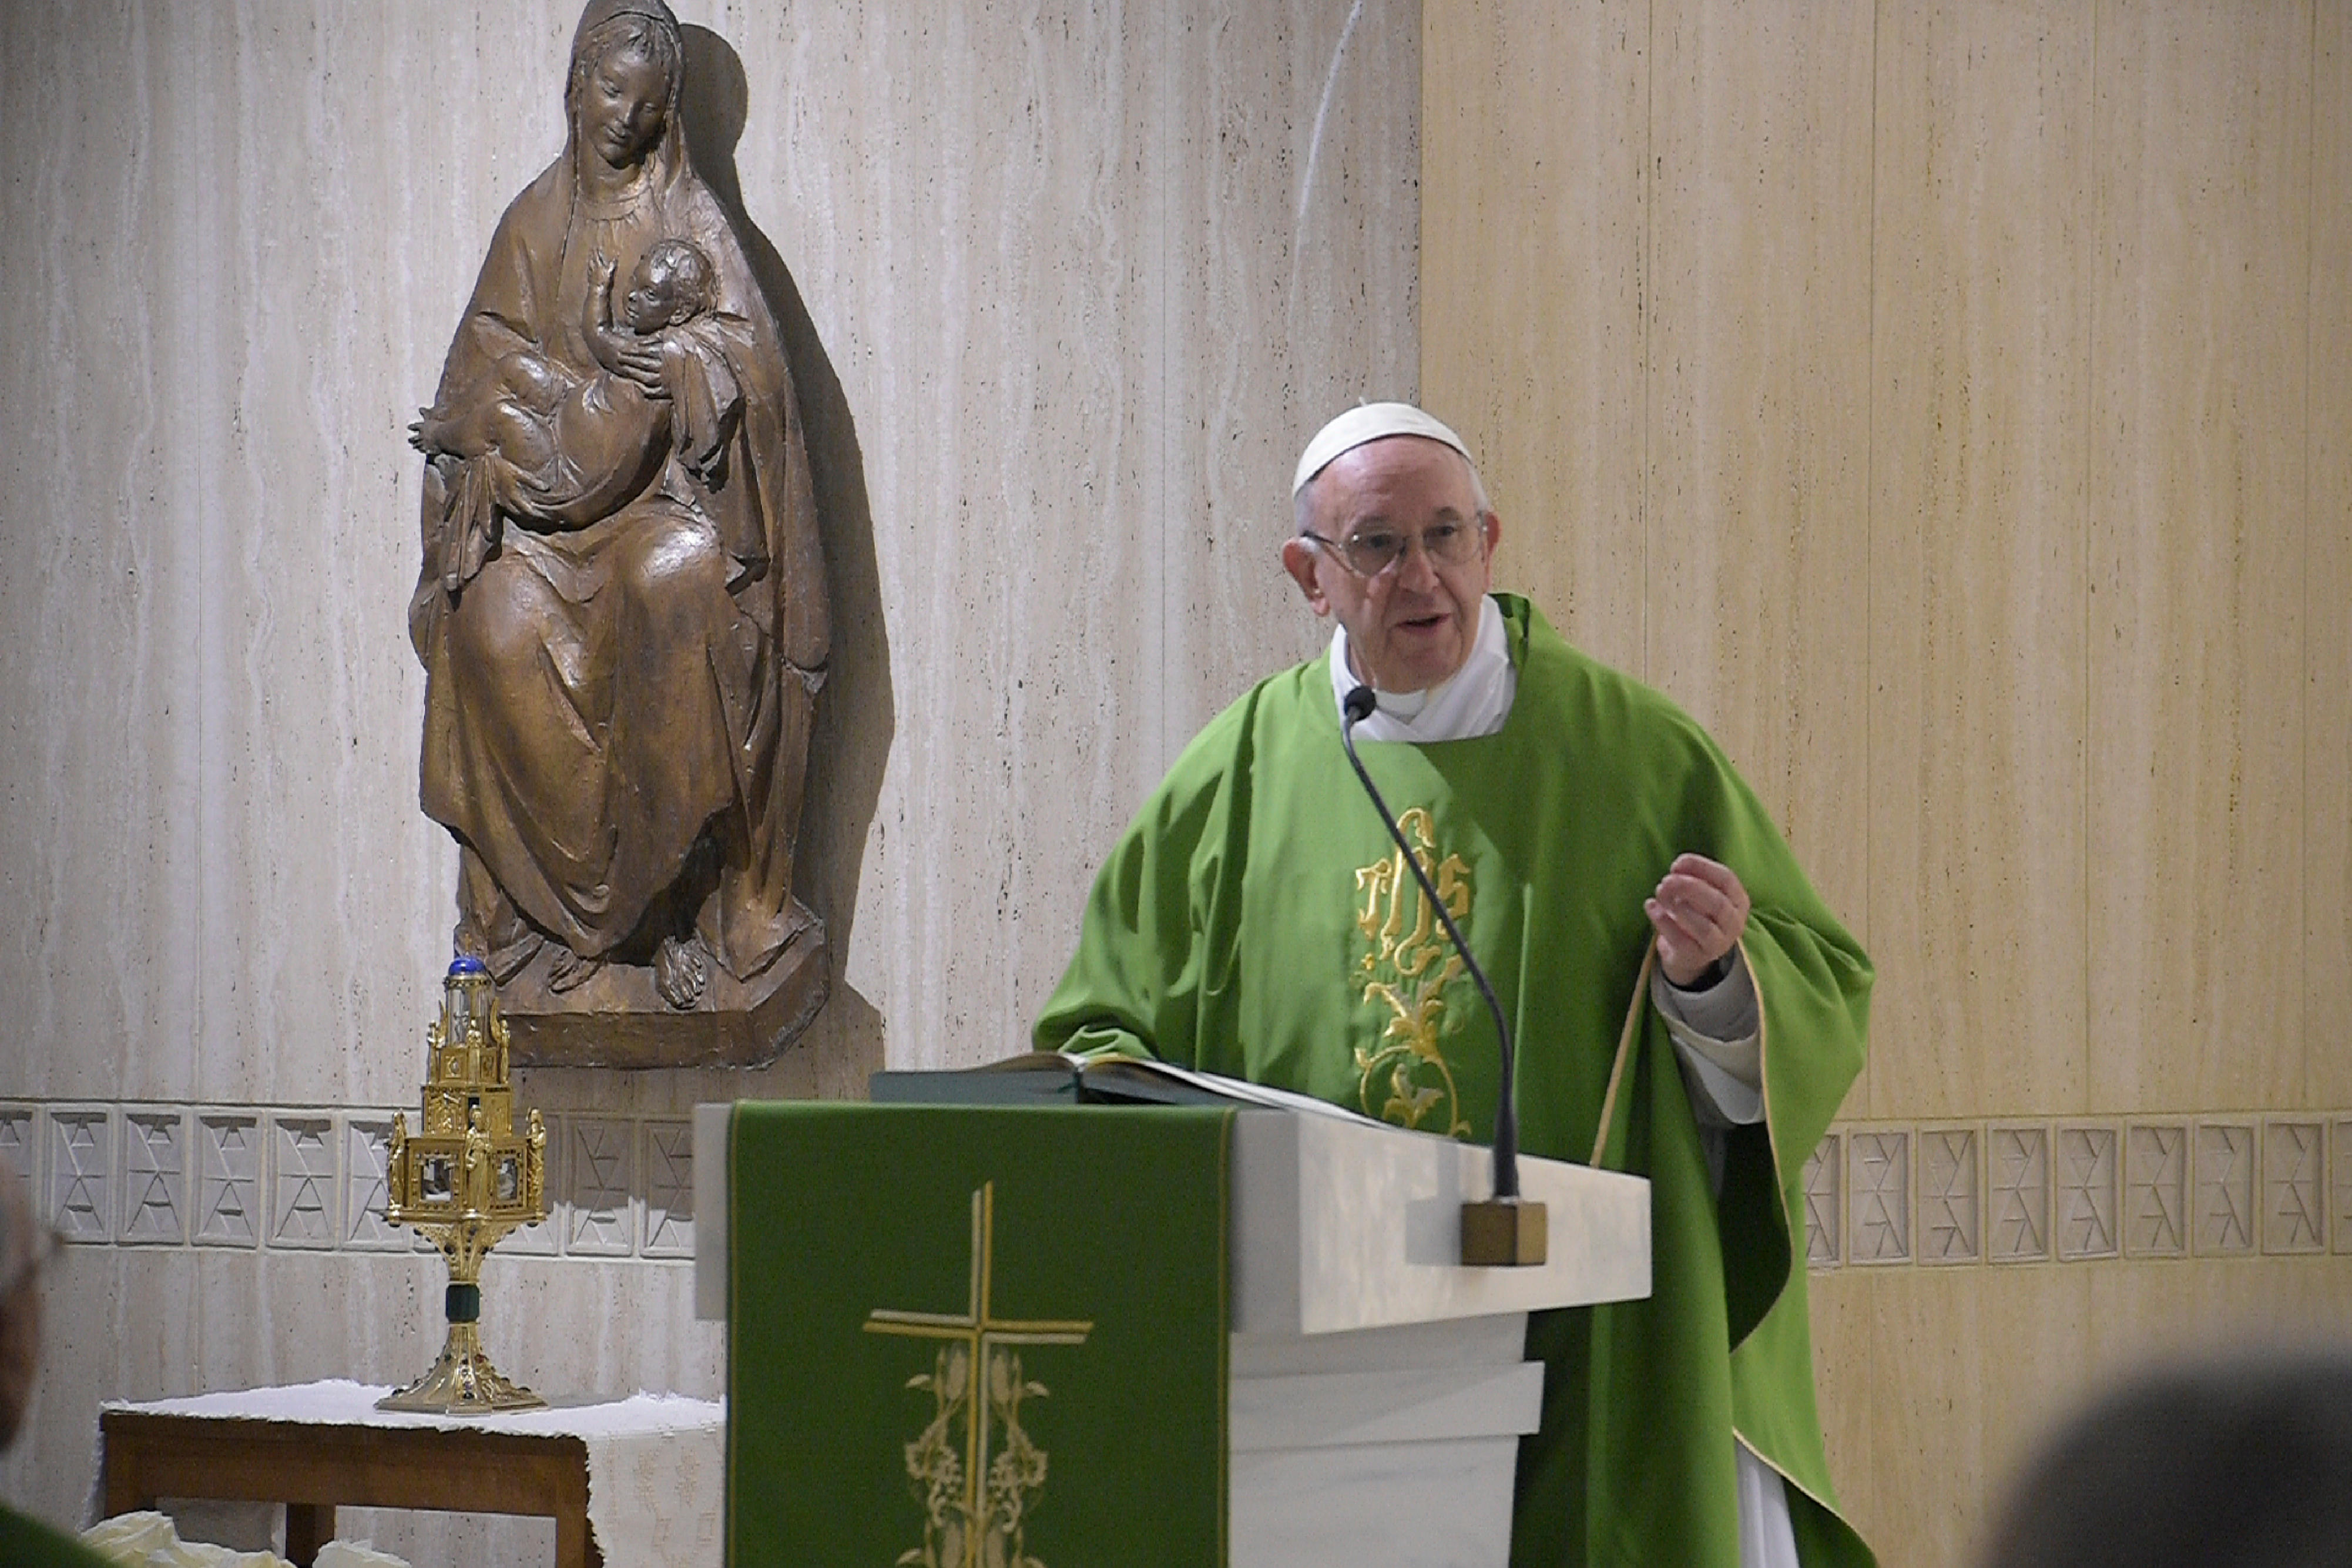 Pope Francis Small Acts Of Kindness Not Great Speeches Show Gods